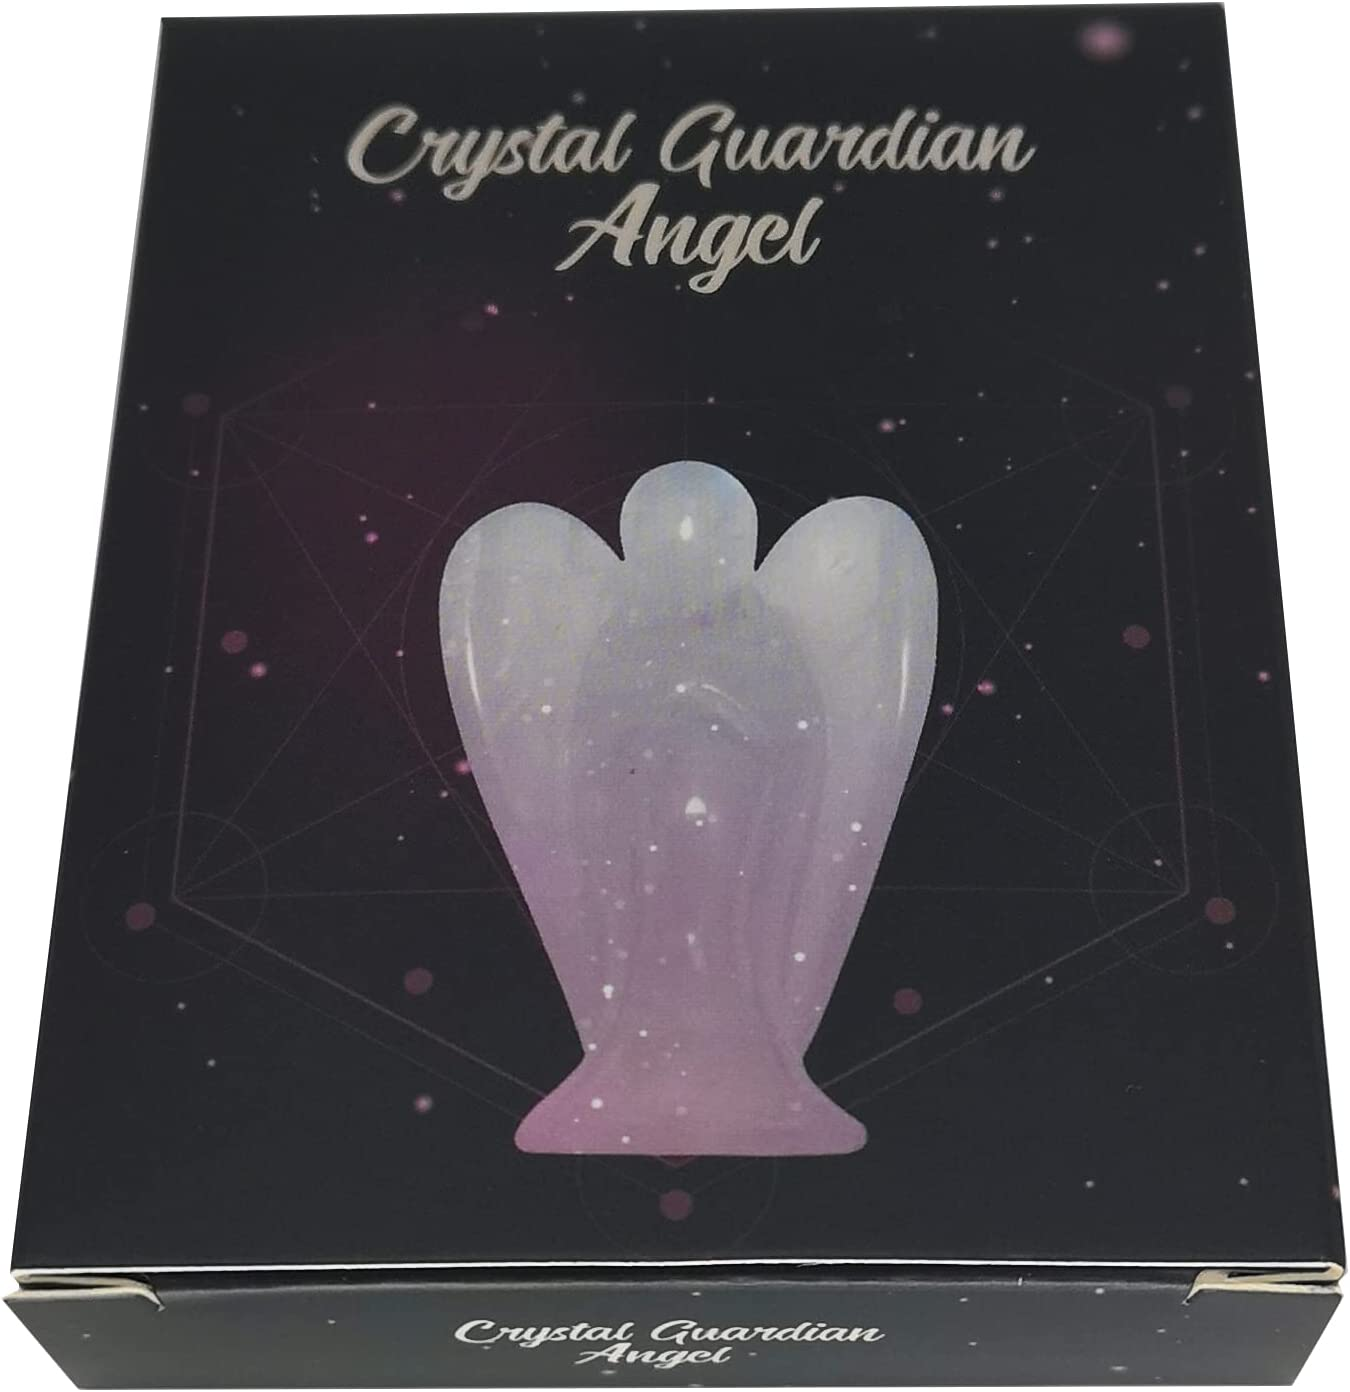 Clear Quartz or Jasper Crystal 1/½ Inch Guardian Angel with *Extra* Chakra Crystal /& Gift Box Aventurine Lapis Lazuil Amethyst Turquoise Angel Statue Figurine. Rose Quartz Angel with Tiger/'s Eye